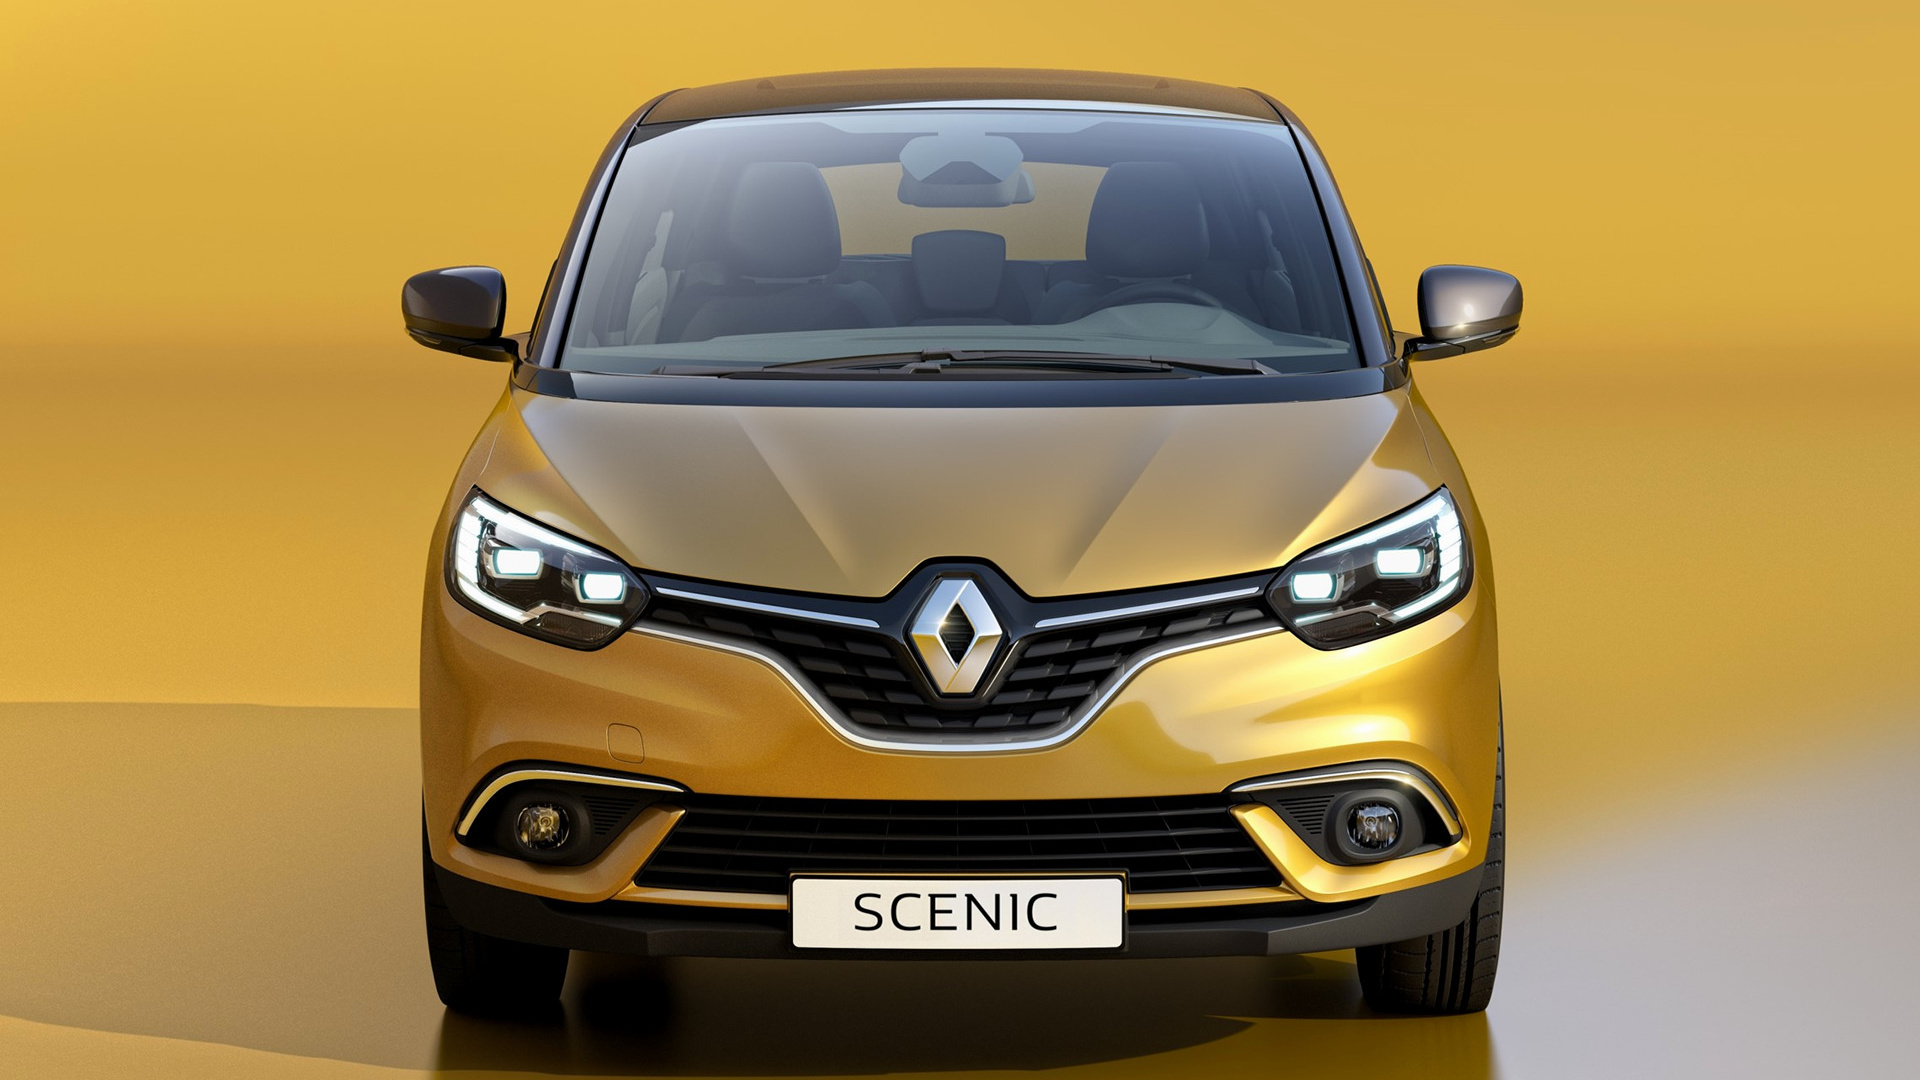 renault scenic 2016 wallpapers and hd images car pixel. Black Bedroom Furniture Sets. Home Design Ideas